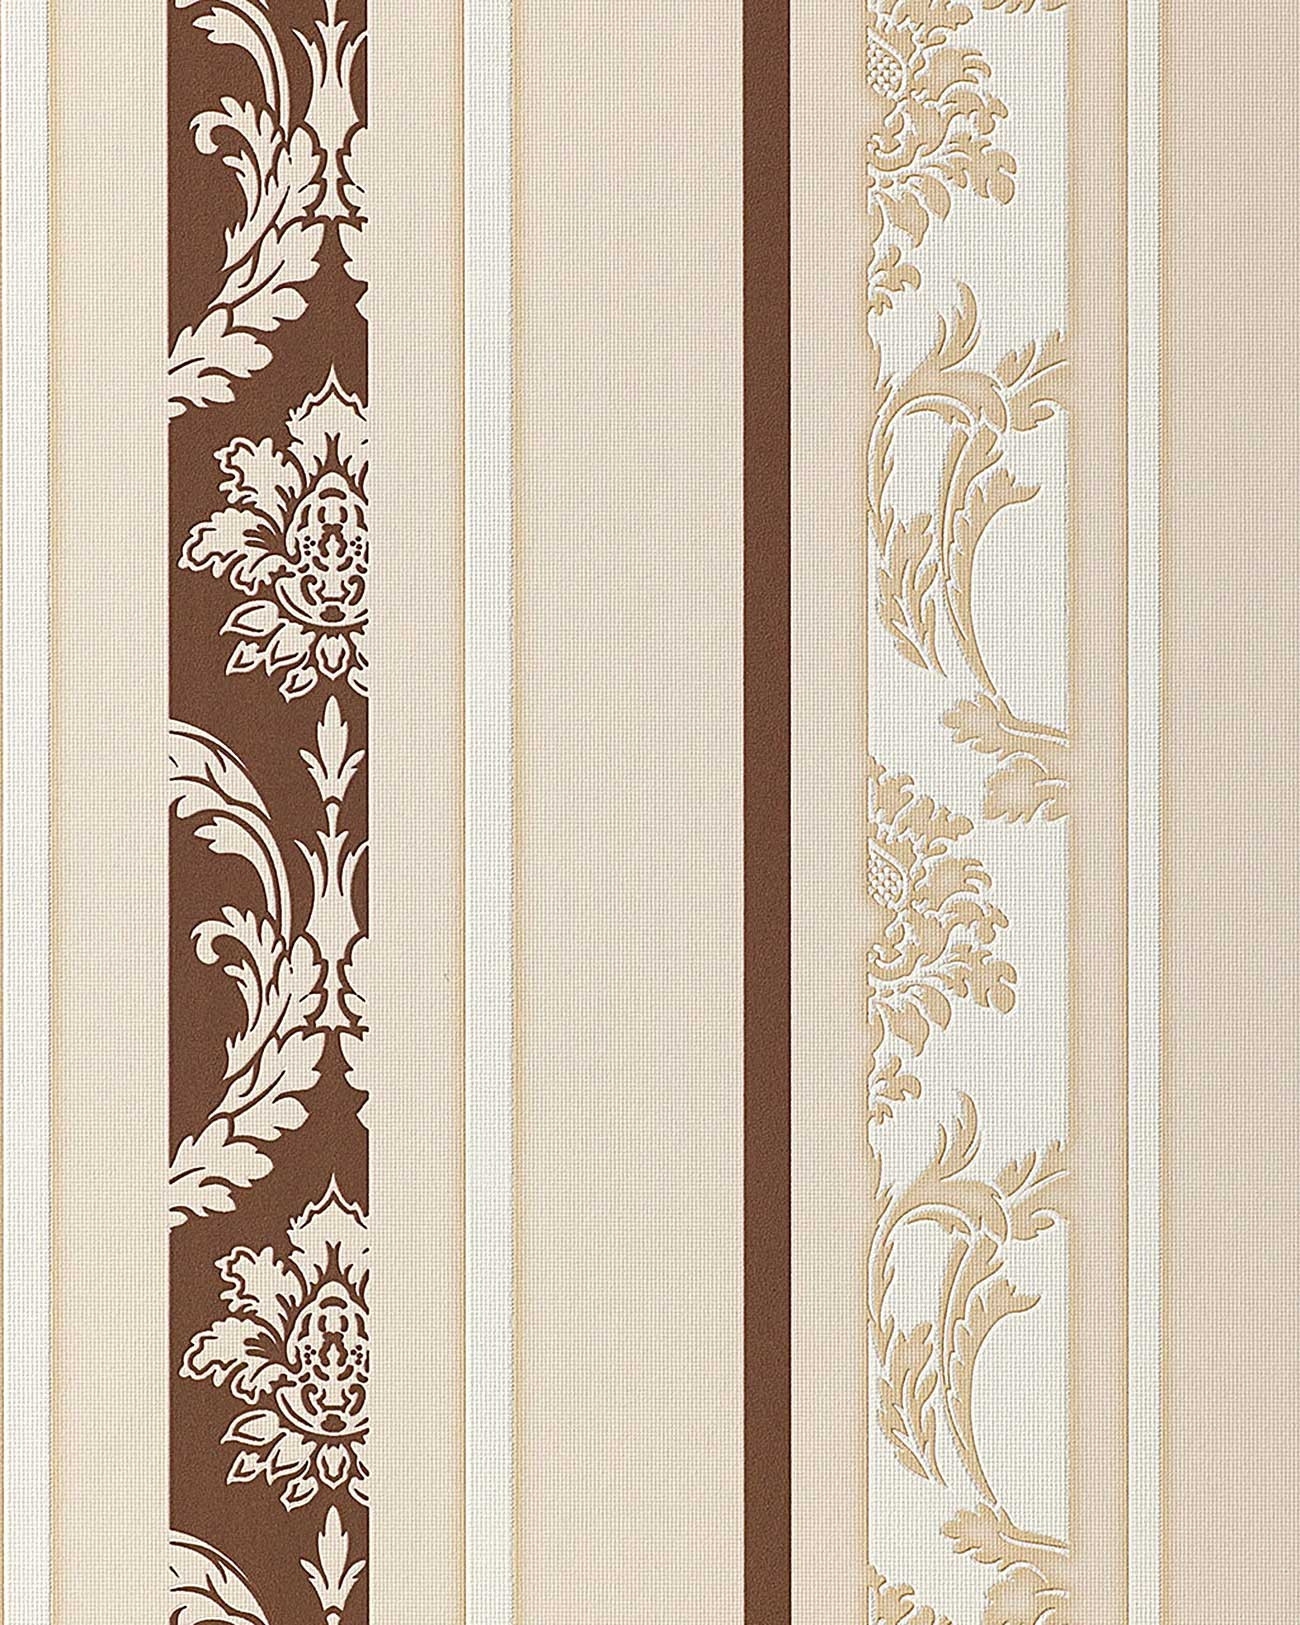 Papier Peint N O Baroque Edem 053 23 Design Ornement Ray Flockage Brun Marron Blanc Beige Clair